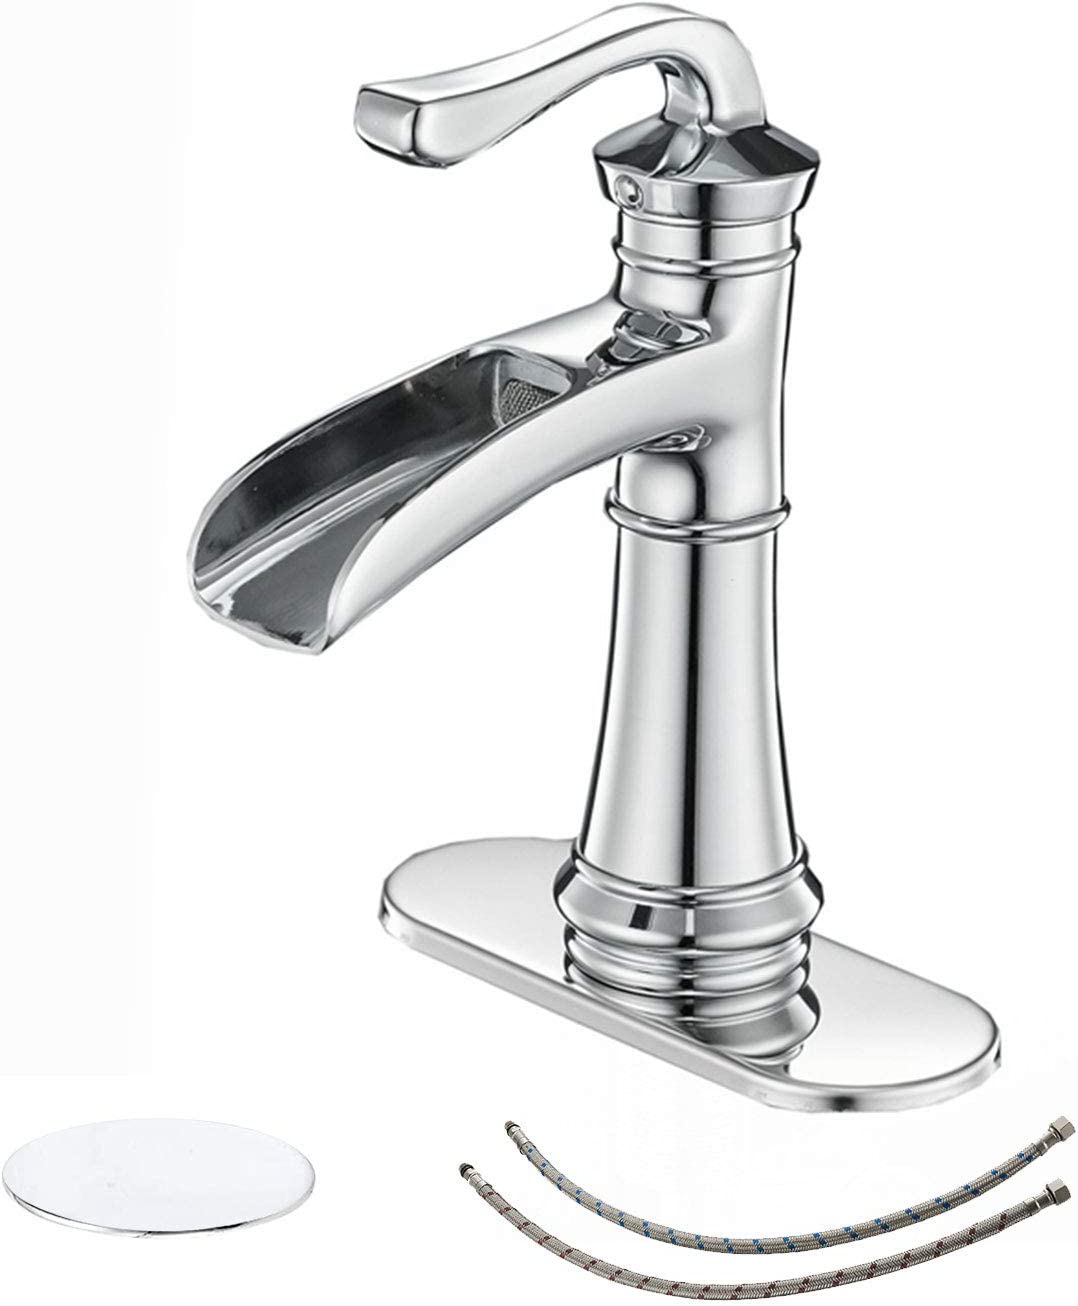 BWE Bathroom Sink Faucet Chrome with Drain Assembly and Supply Hose Lead-free Single-Handle Single Hole Waterfall Bathroom Faucet Deck Mount Lavatory Mixer Tap